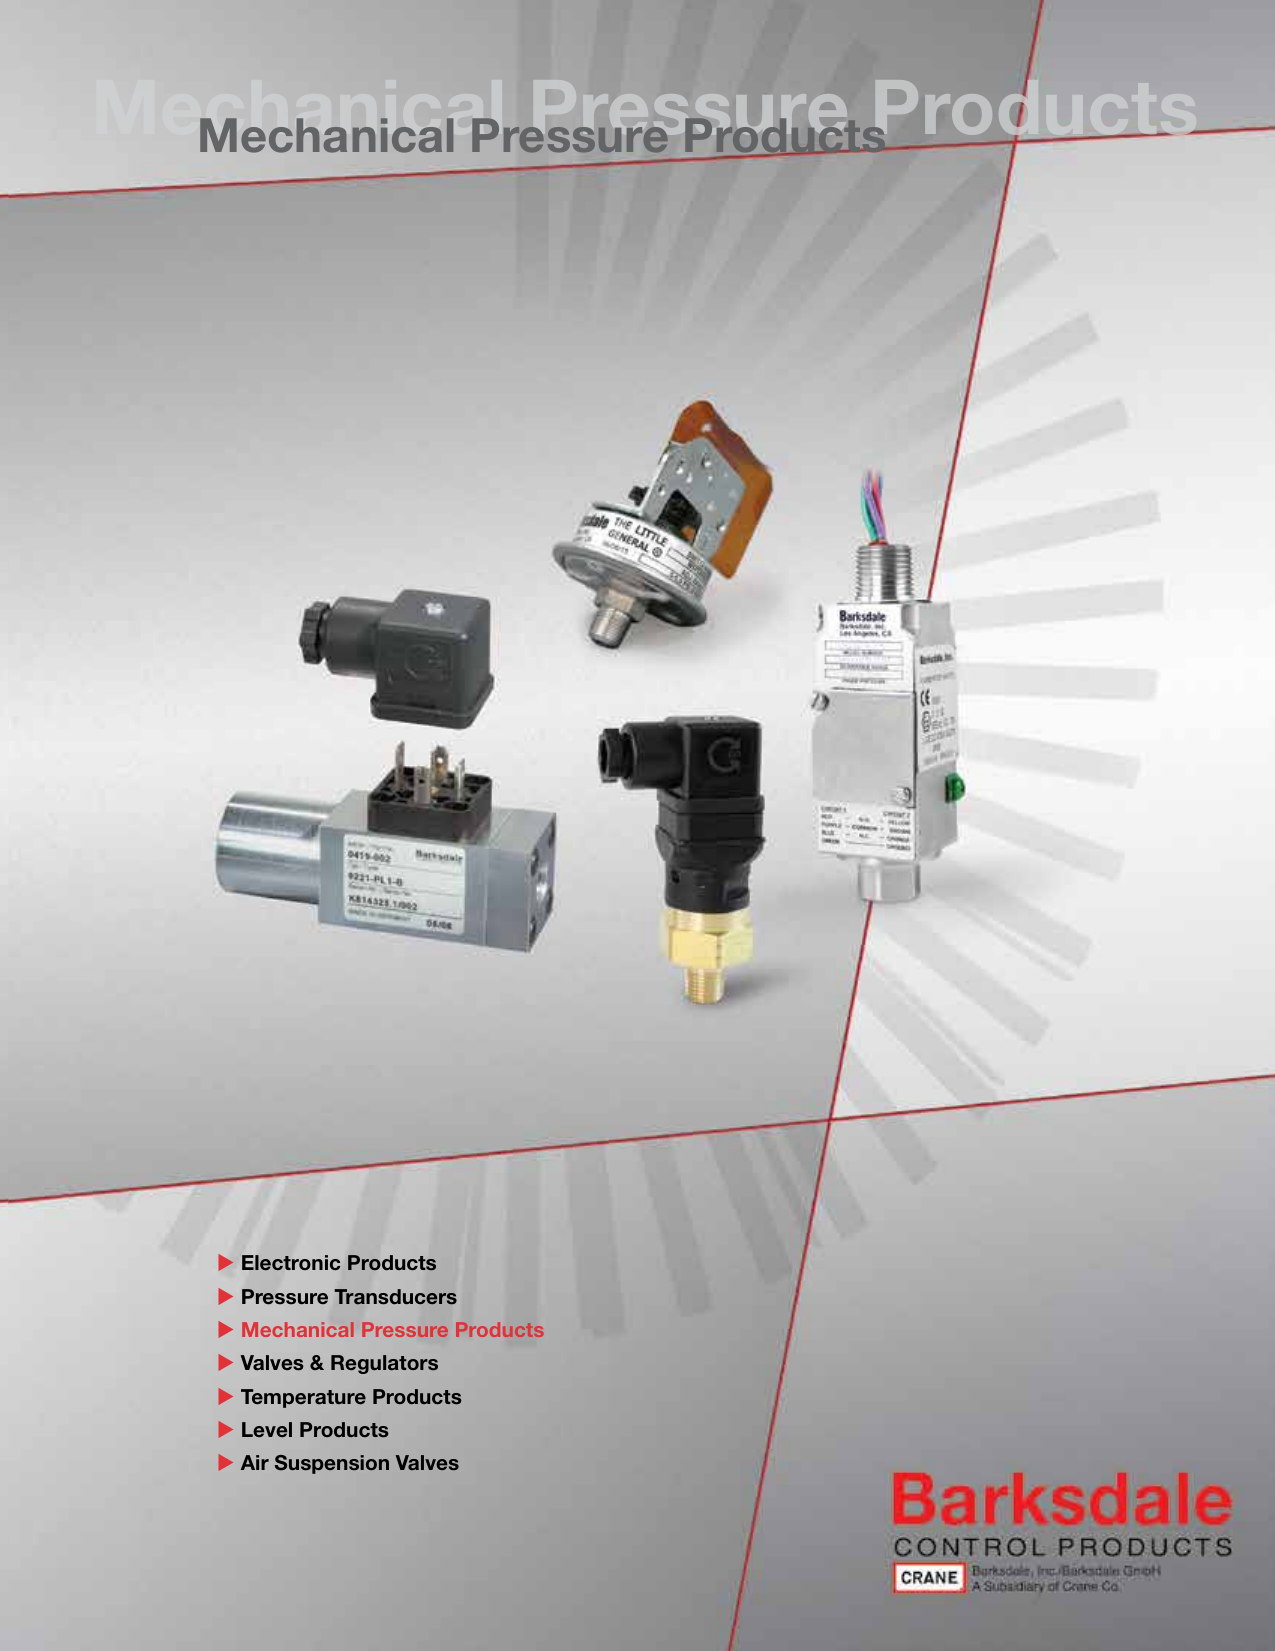 Mechanical Pressure Products on actuator wiring diagram, solenoid wiring diagram, compressor wiring diagram, distributor wiring diagram, temperature switch connector, motor wiring diagram, coil wiring diagram, transformer wiring diagram, condenser wiring diagram, gauge wiring diagram, thermocouple wiring diagram, contactor wiring diagram, pressure wiring diagram, starter wiring diagram, sensor wiring diagram, temperature switch sensor, control wiring diagram, temperature switch schematic, timer wiring diagram, controller wiring diagram,